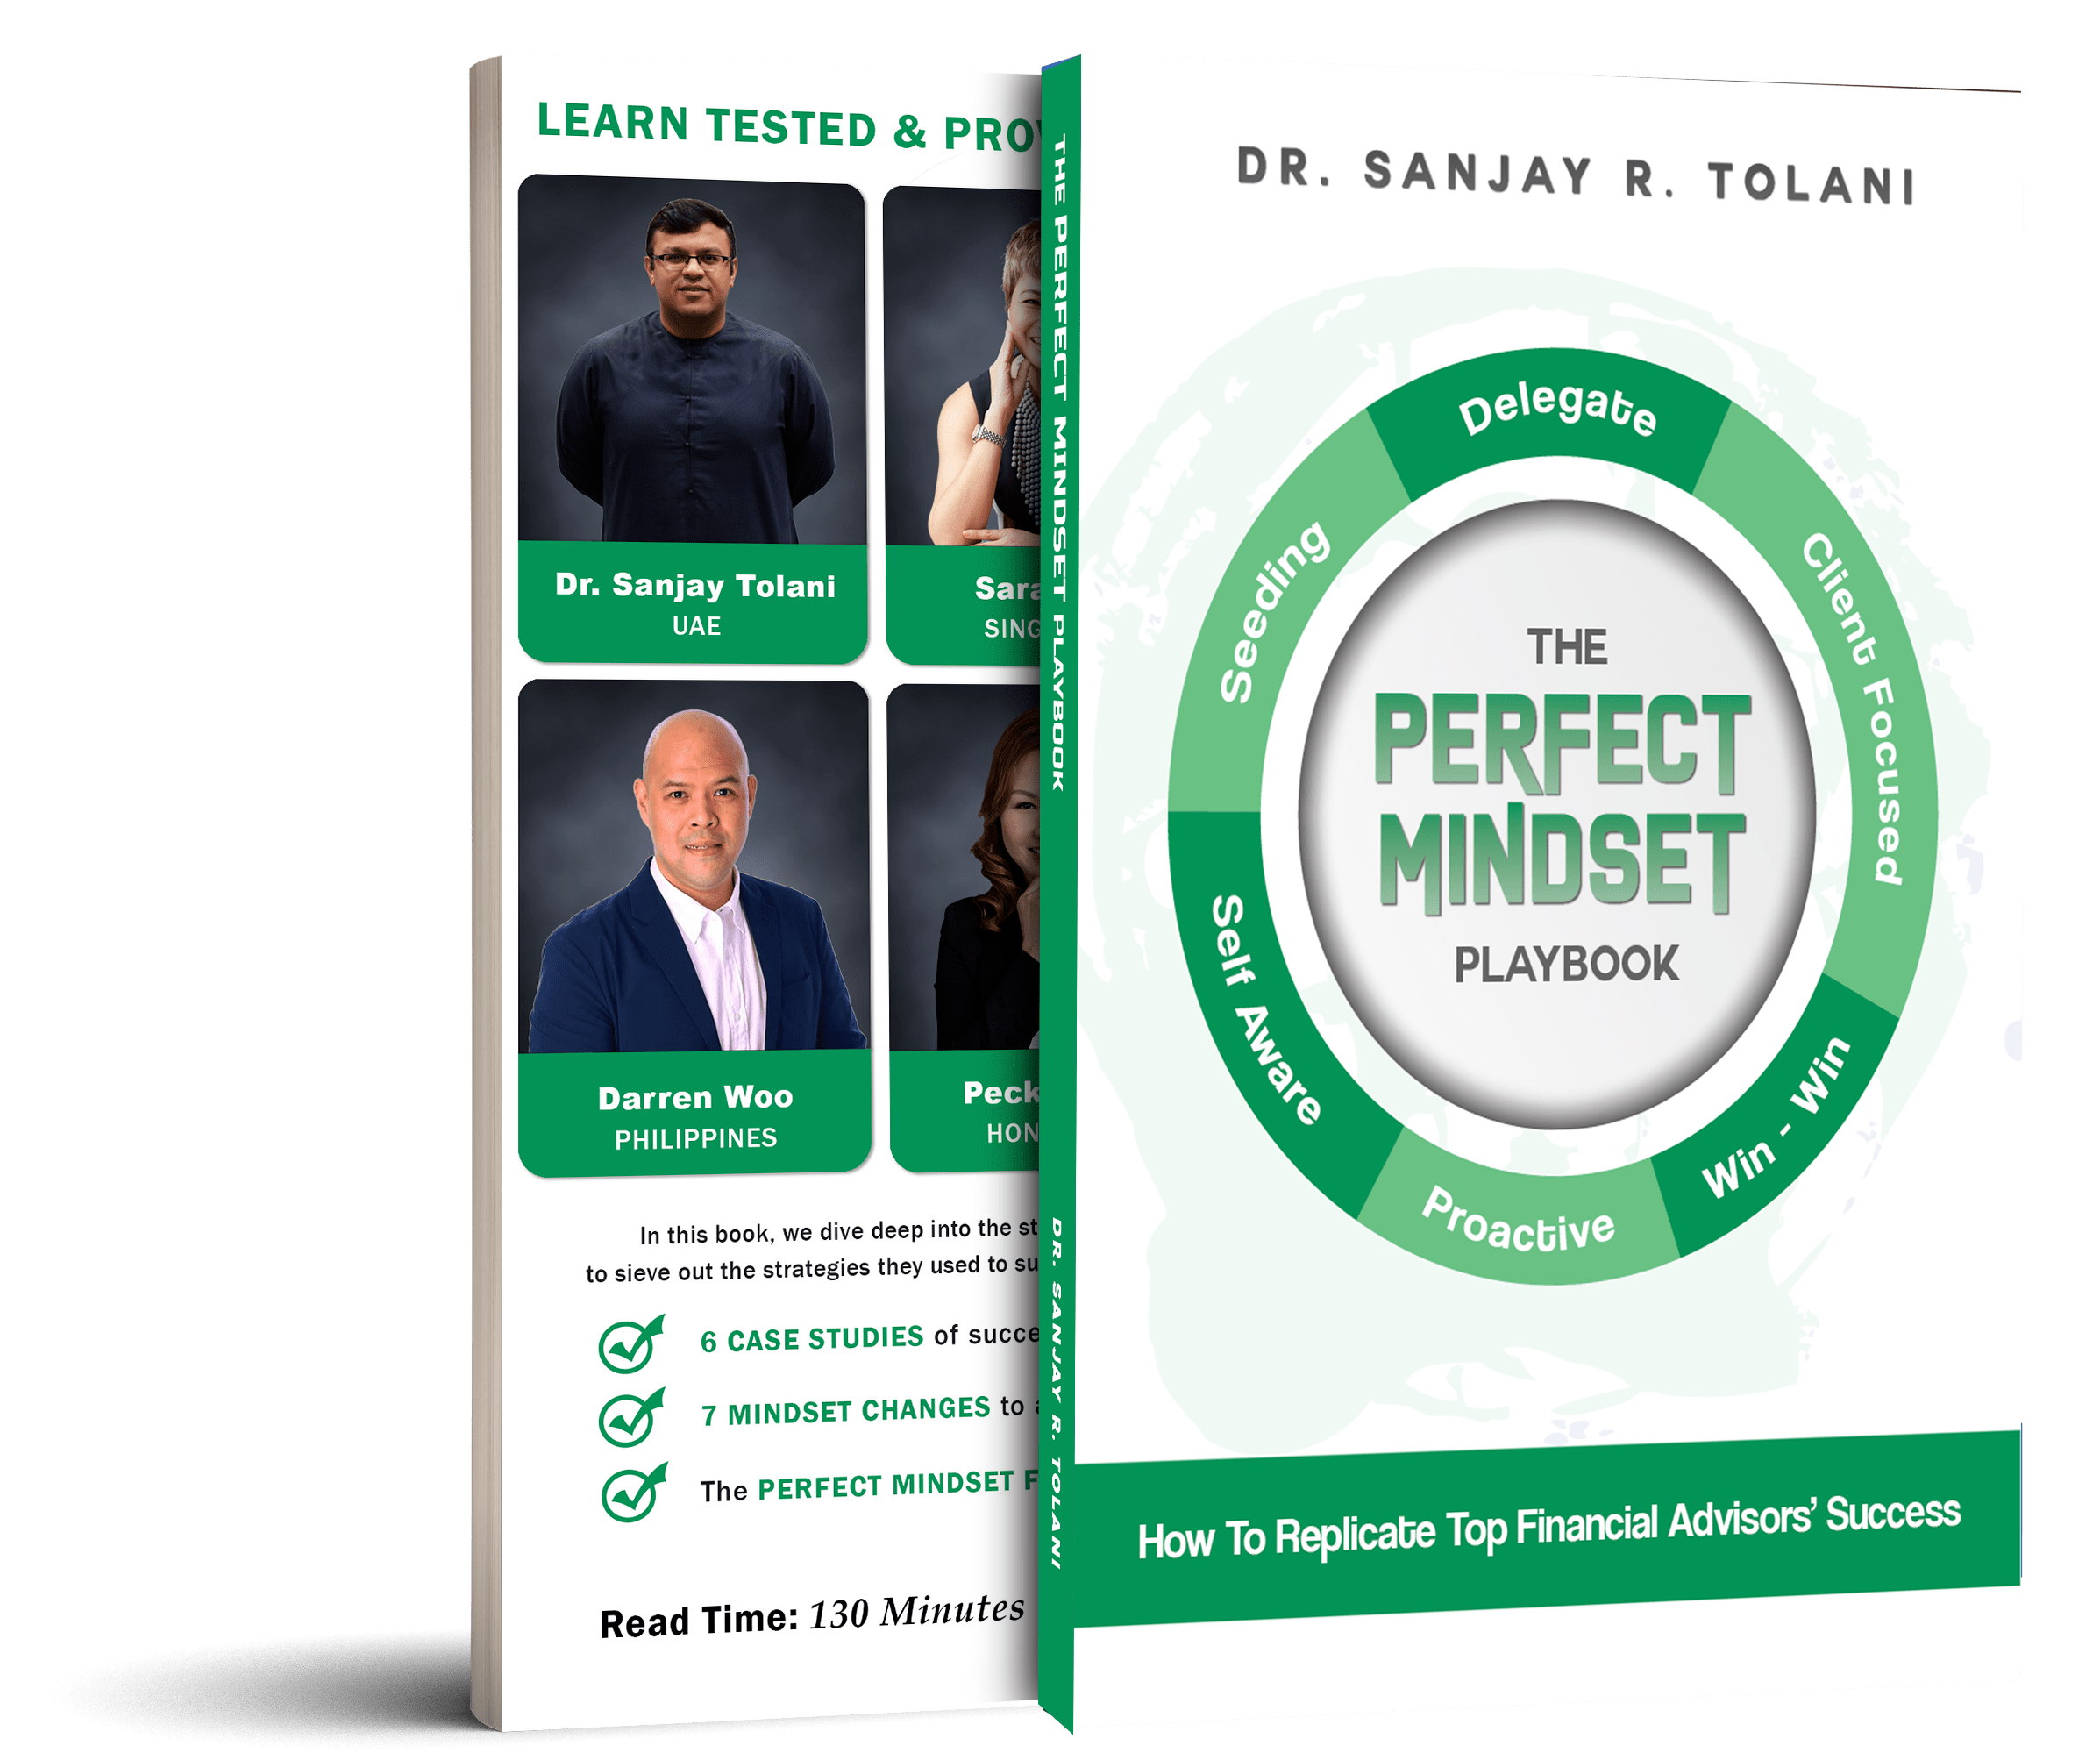 The Perfect Mindset Playbook third edition